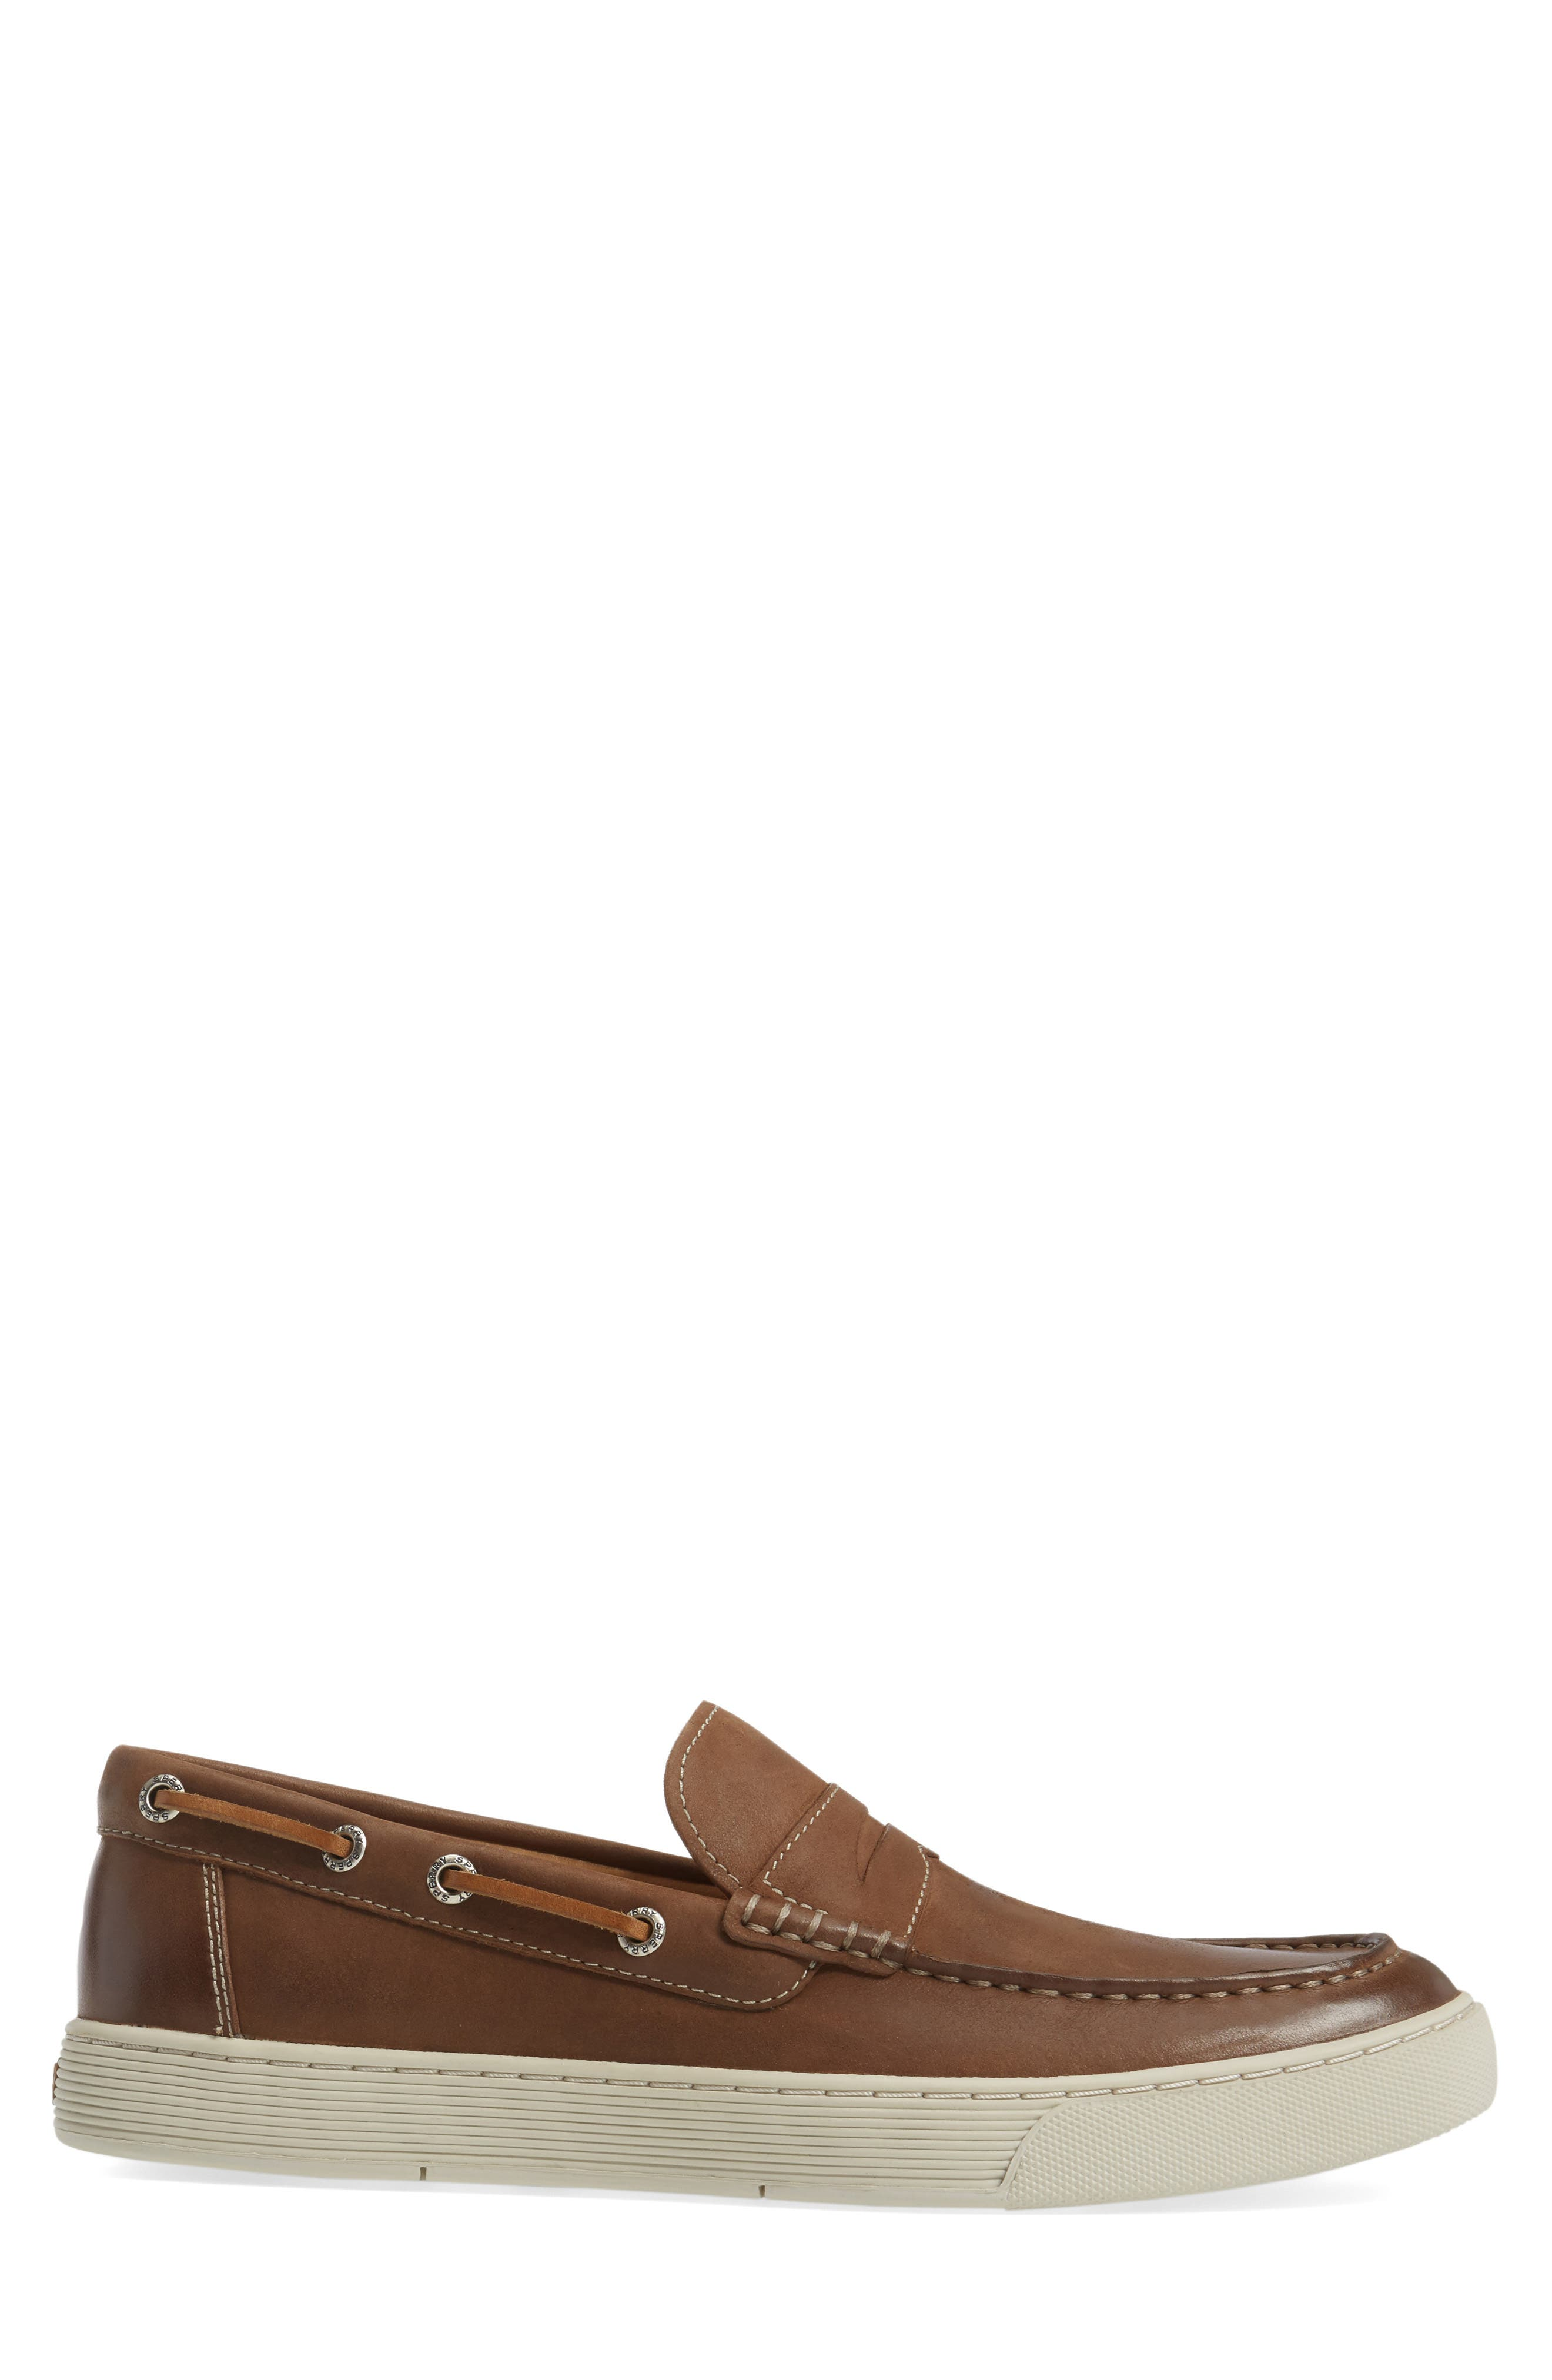 Gold Cup Penny Loafer,                             Alternate thumbnail 6, color,